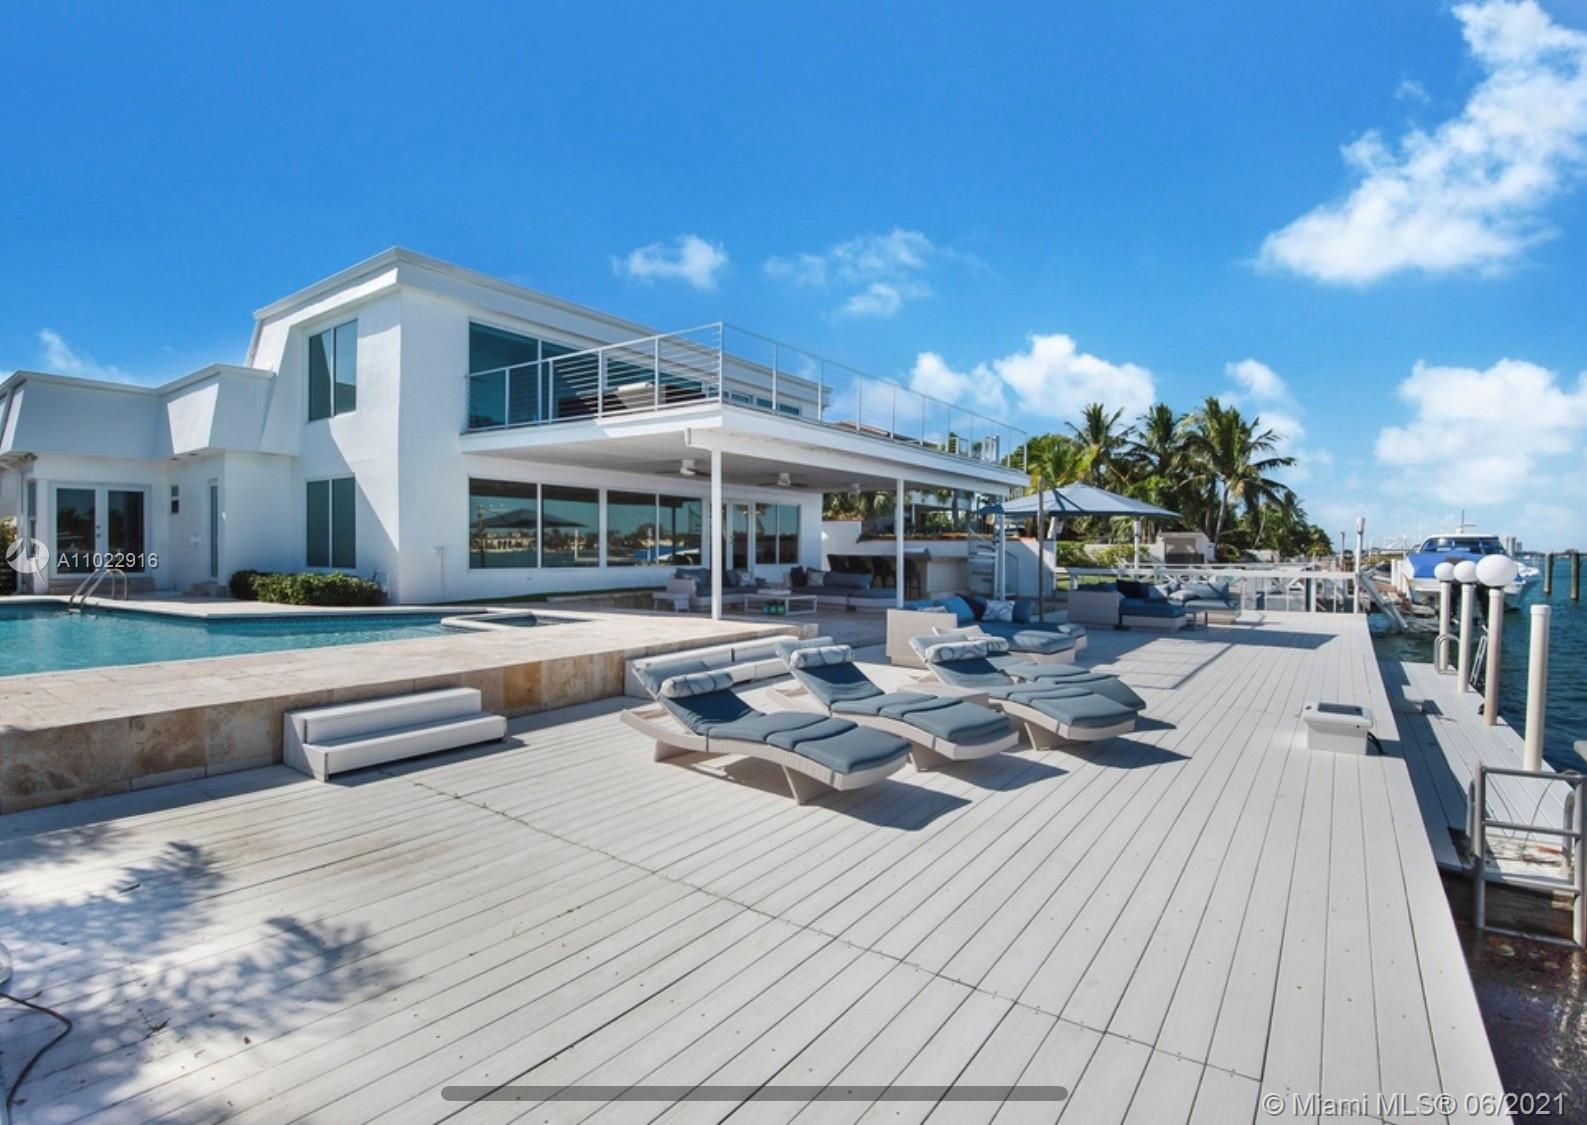 Welcome to 1055 Stillwater Drive. Miami Beach's best-kept secret, and visit this 7 bedrooms 5 bathrooms waterfront home sitting on a large 11764 Sq. Ft lot. a luxurious guard-gated Island in Miami Beach. You'll be in love with the panoramic open bay view. This beautiful home boasts 78 FT water frontage. Bring your boat, jet ski, kayaks and enjoy the waterfront Miami Beach lifestyle. This spacious two-story home features two master suites, a private one on the second floor with an extra-large porch to enjoy breathtaking views of Indian Creek, Biscayne Bay, and Surfside Skyline. Watch the dolphins and the manatees right at your feet. The outdoor porch offers spacious sitting and lounge areas some of them nicely covered to enjoy this lifestyle during summer and winter days.